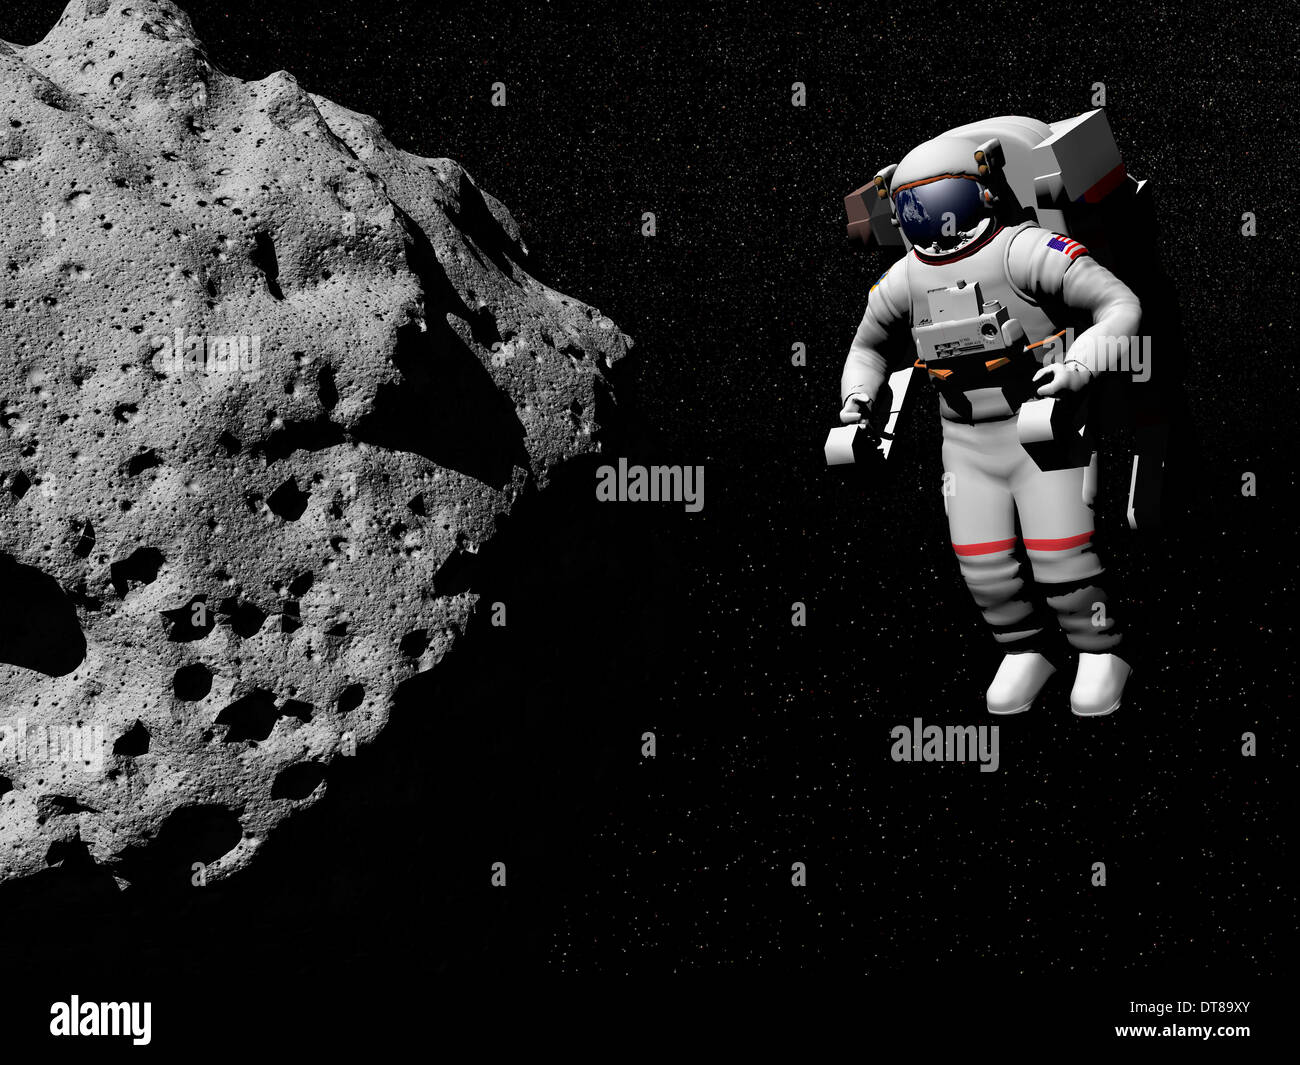 Astronaut exploring an asteroid in outer space. - Stock Image